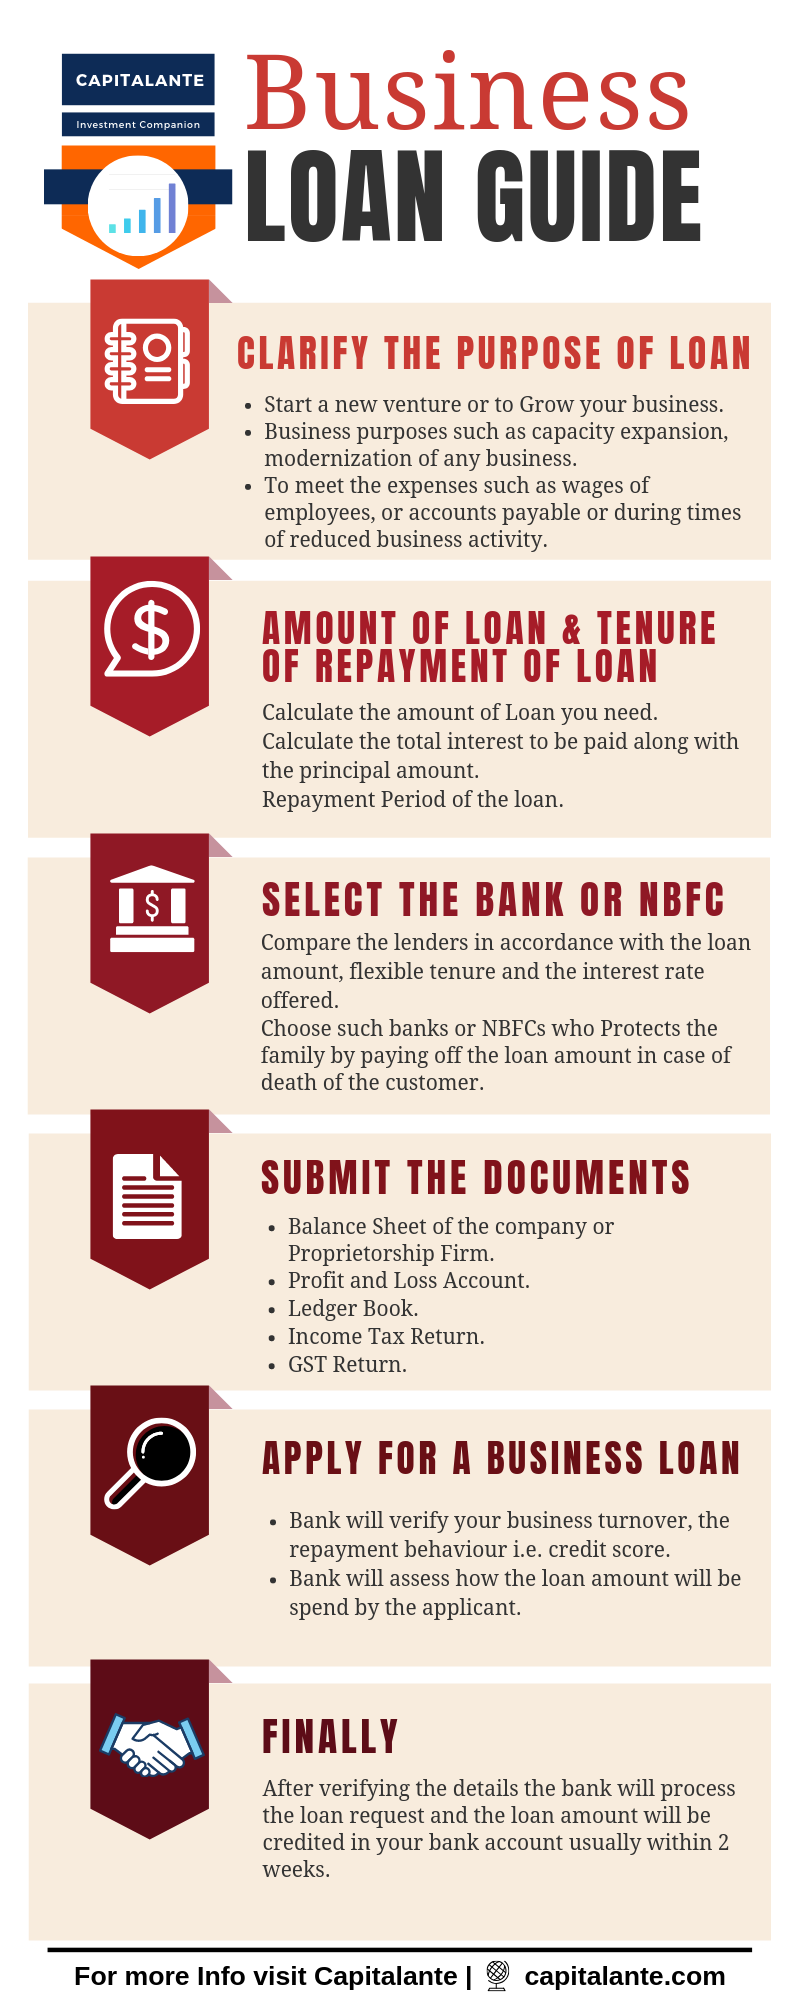 Types of Loan - Business Loan